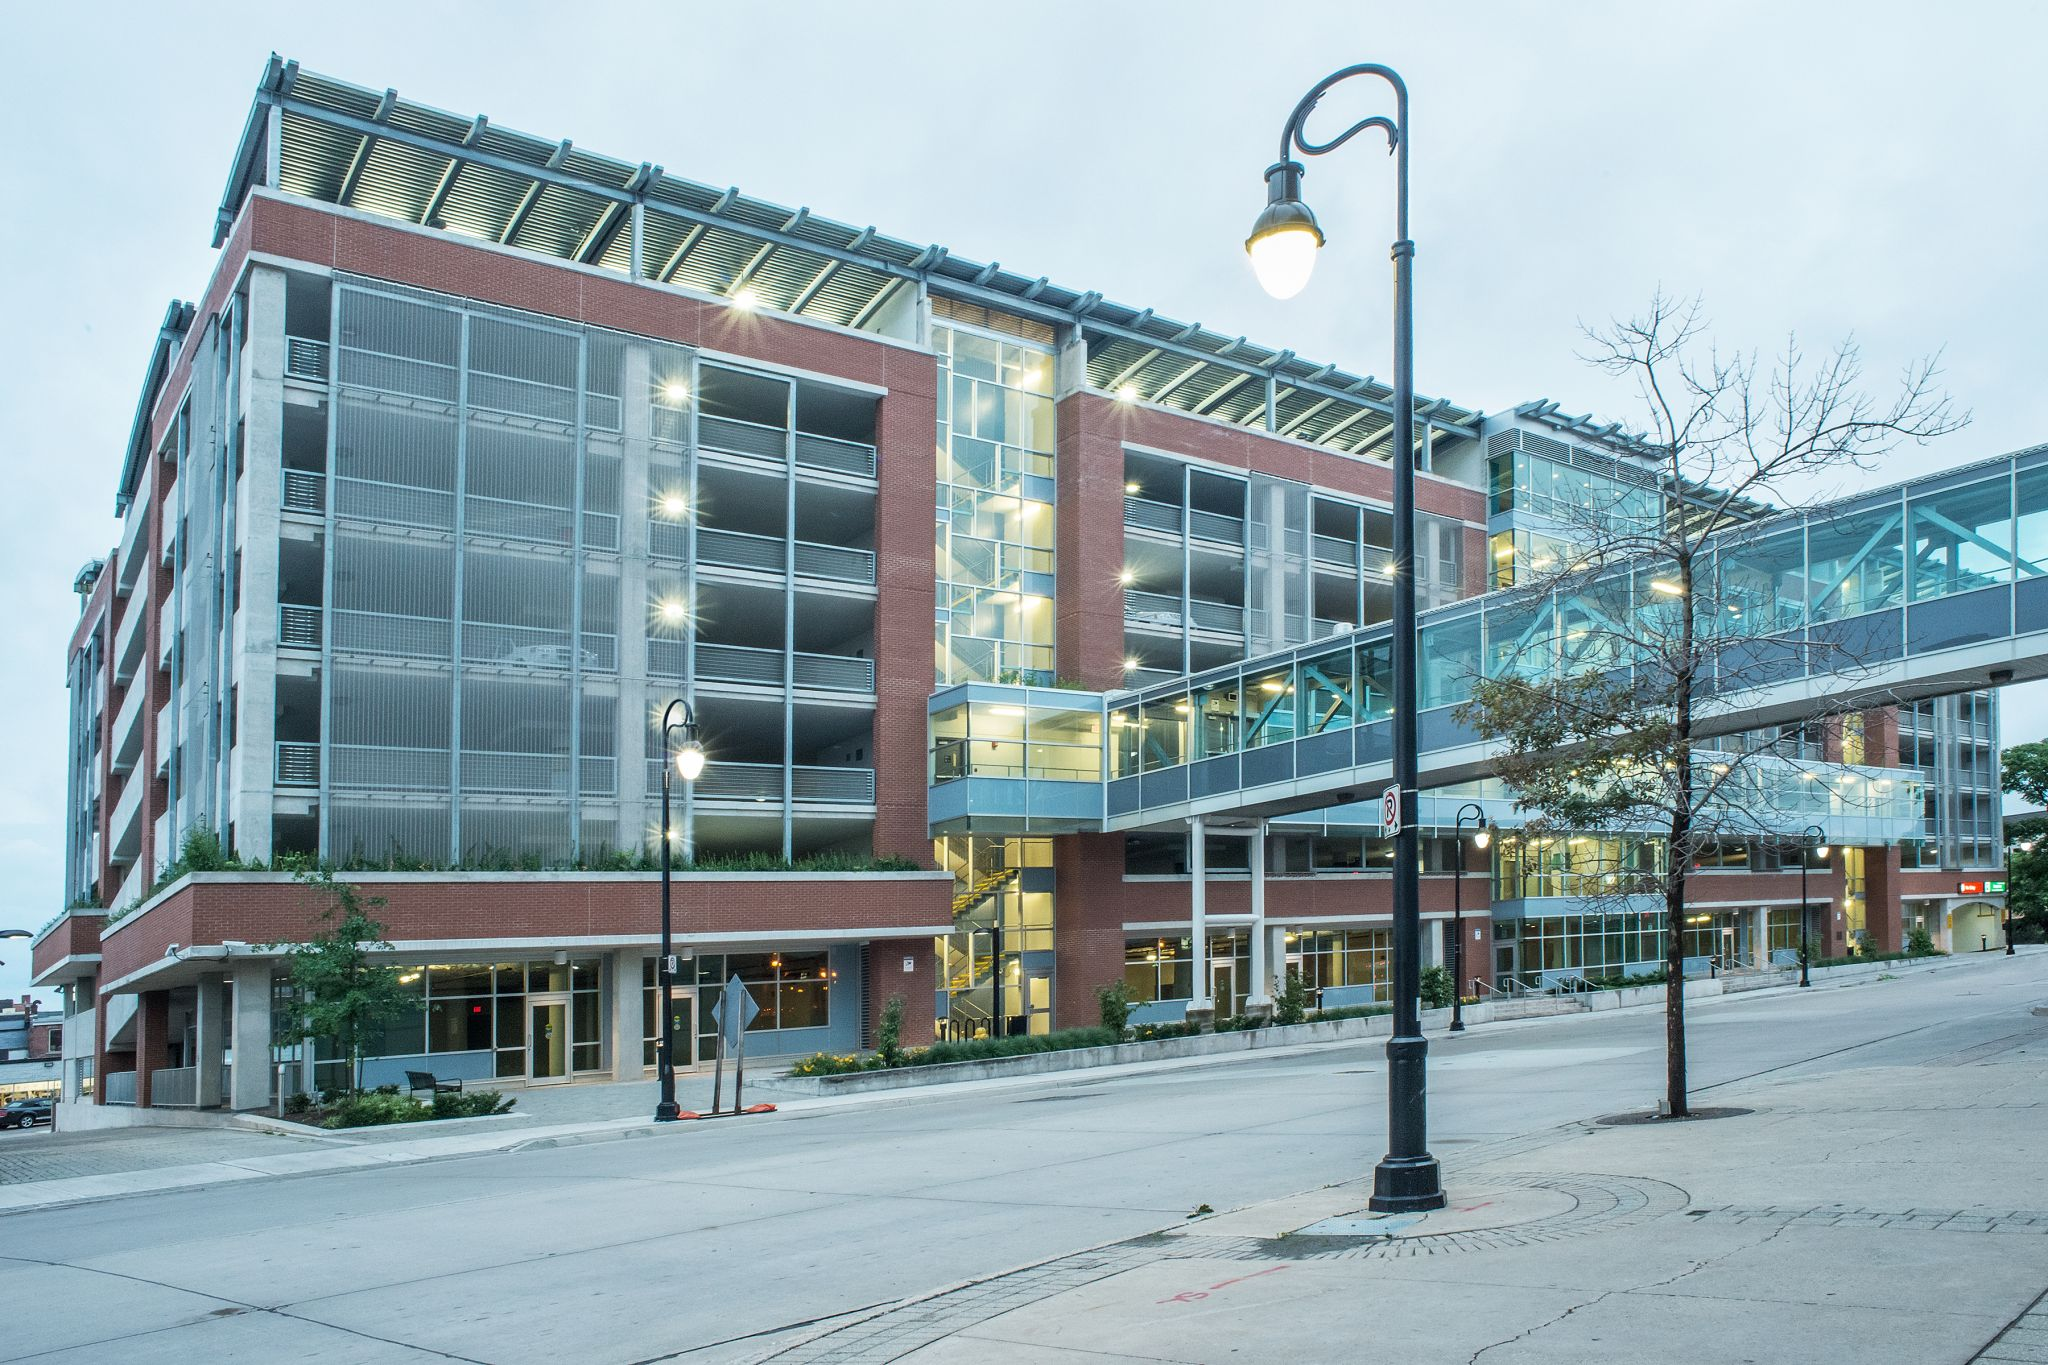 . Catharines, Ont.-based Macdonald Zuberec Ensslen Architects (MZE) designed the Carlisle Street Parking Garage. The team used environmentally friendly woven wire mesh to increase safety of the structure. Photos courtesy W.S. Tyler